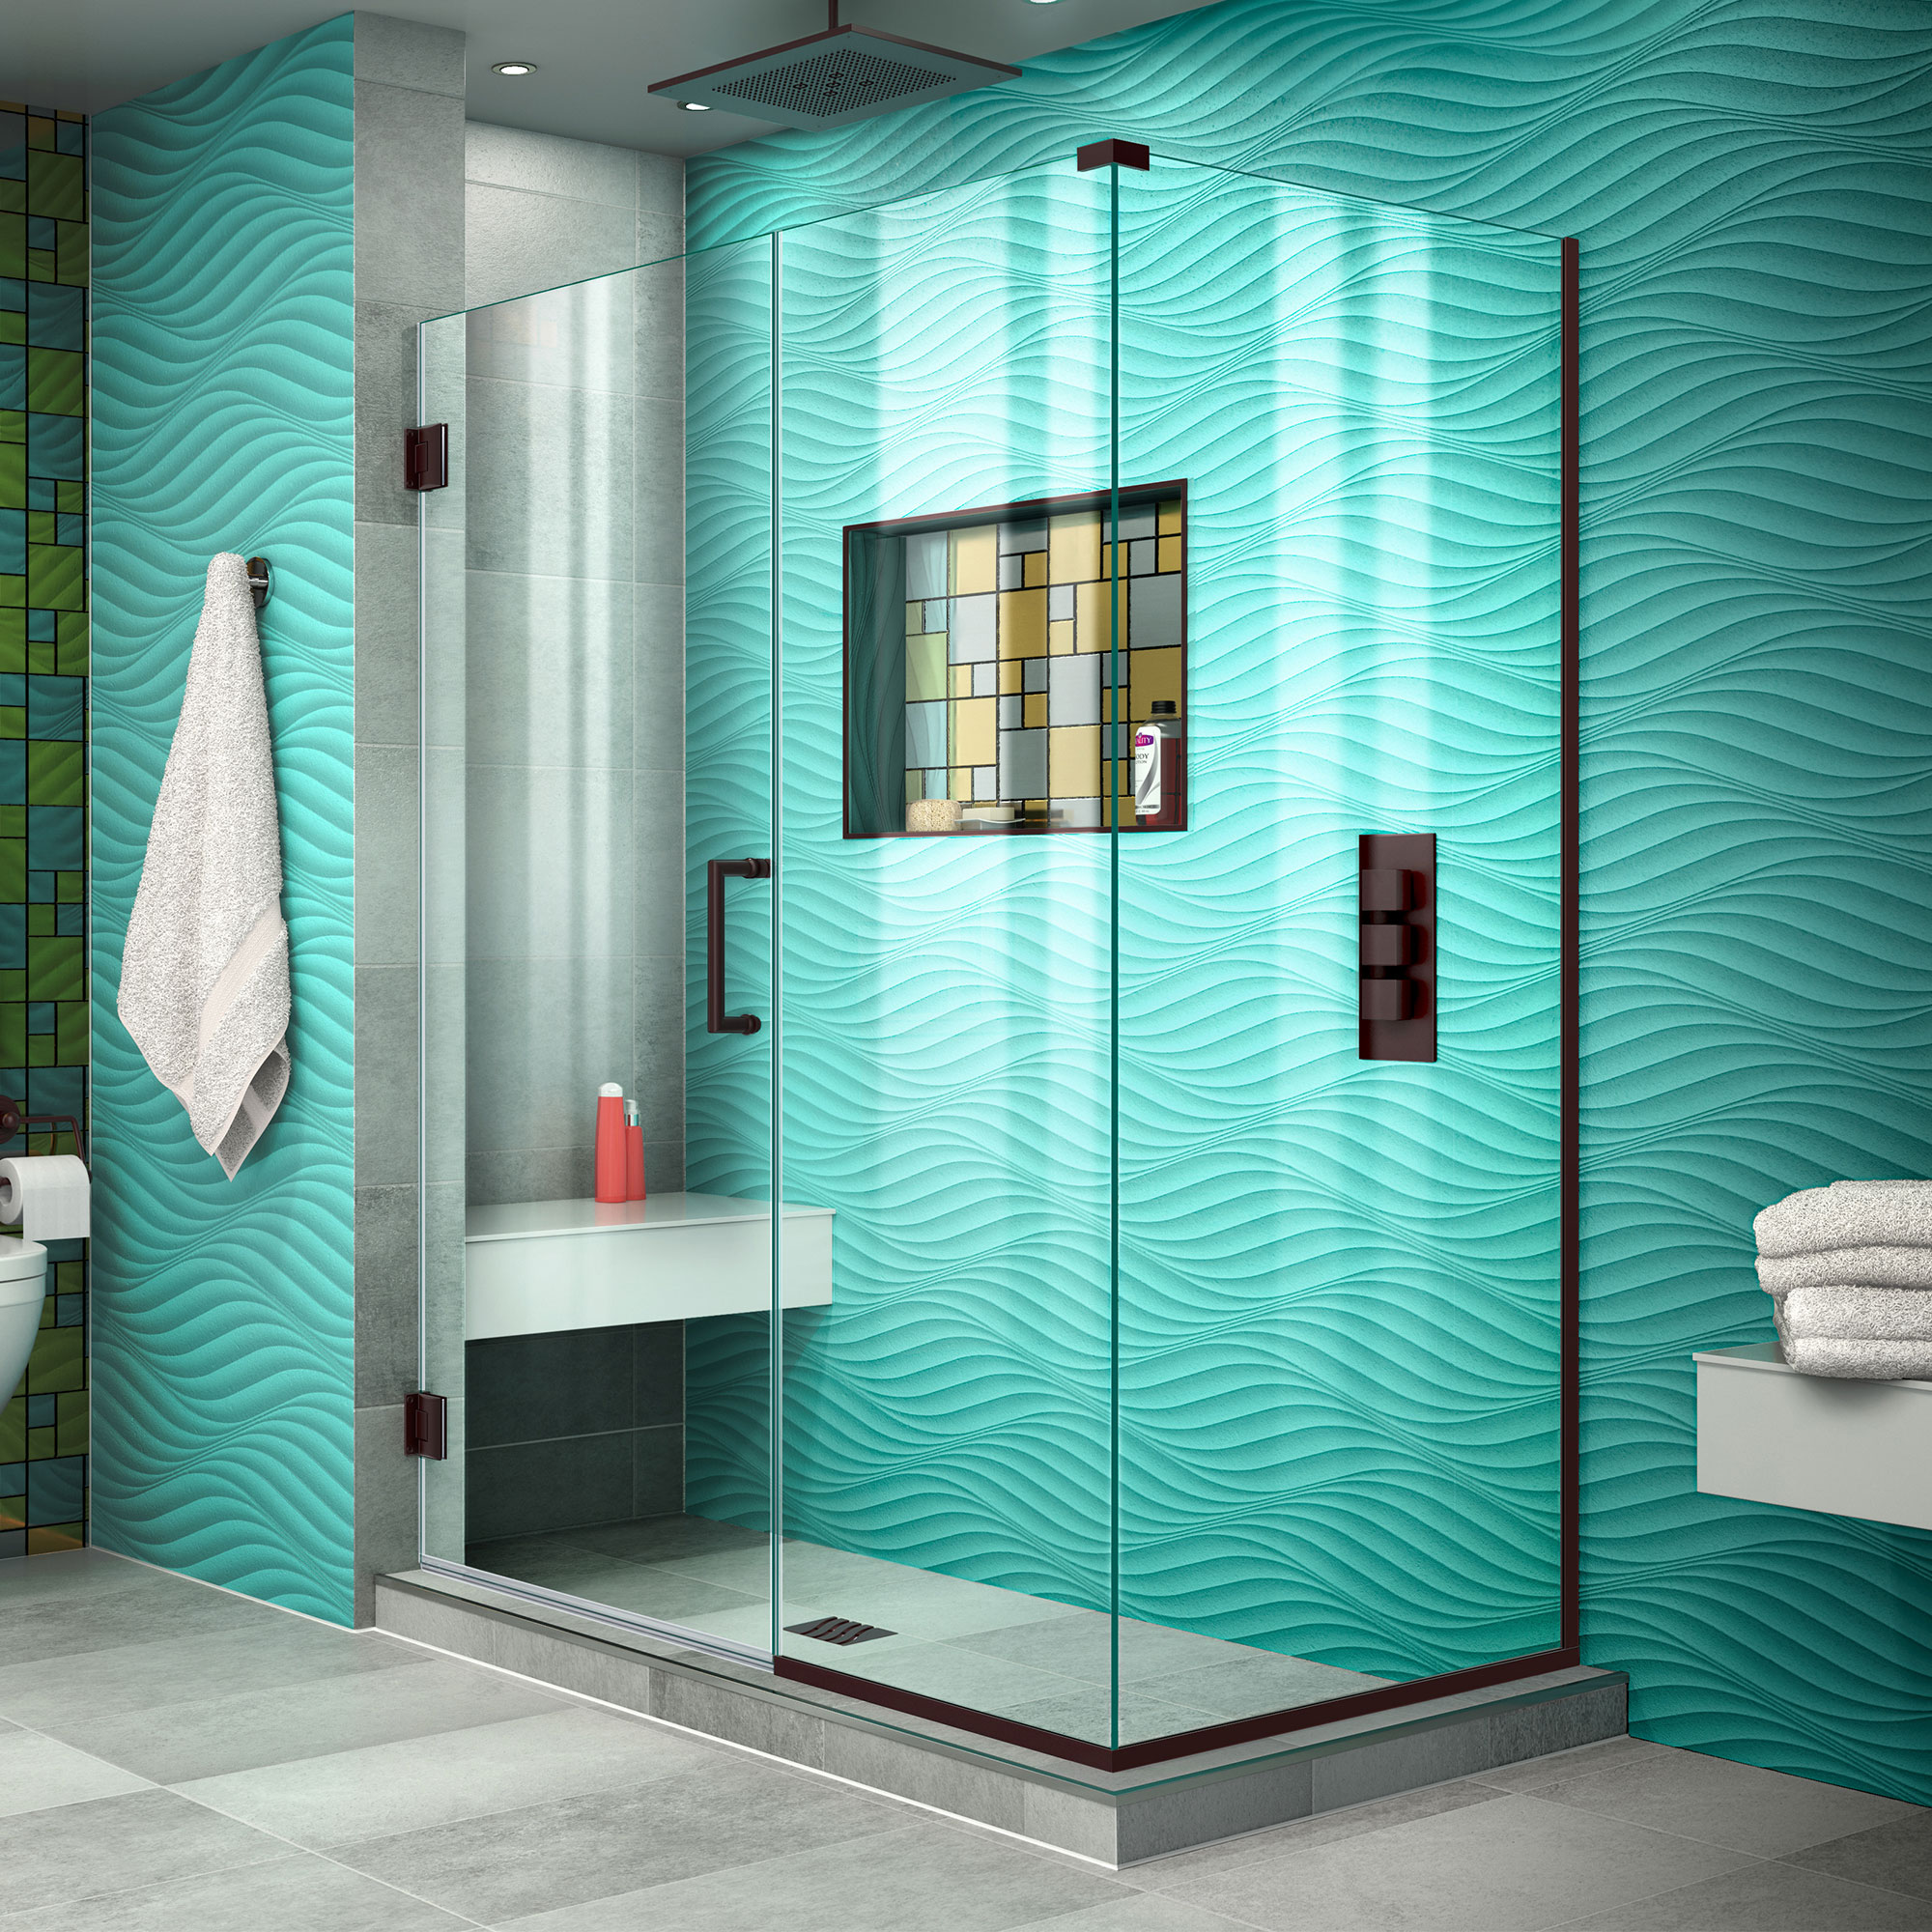 DreamLine Unidoor Plus 46 1/2 in. W x 34 3/8 in. D x 72 in. H Frameless Hinged Shower Enclosure in Oil Rubbed Bronze